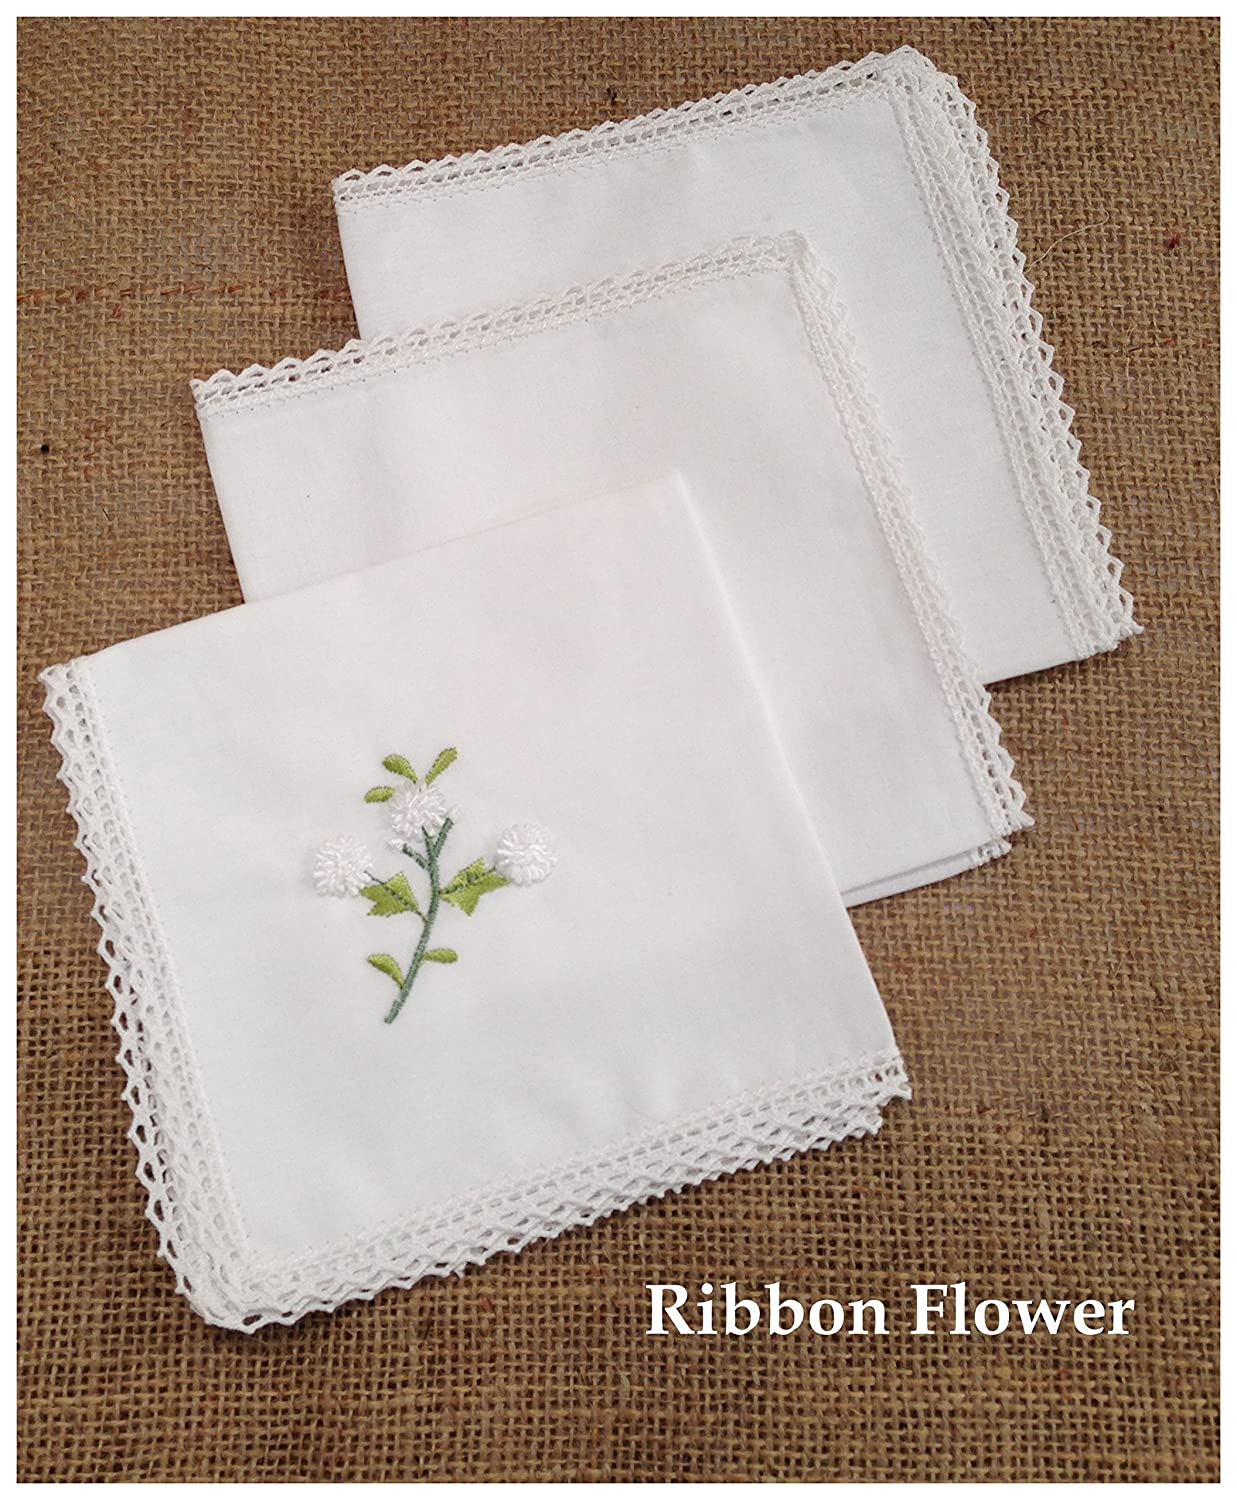 Pack of 3 Beautiful 100% Cotton Ladies Handkerchiefs with Fine Crochet Border (Ribbon Flowers)